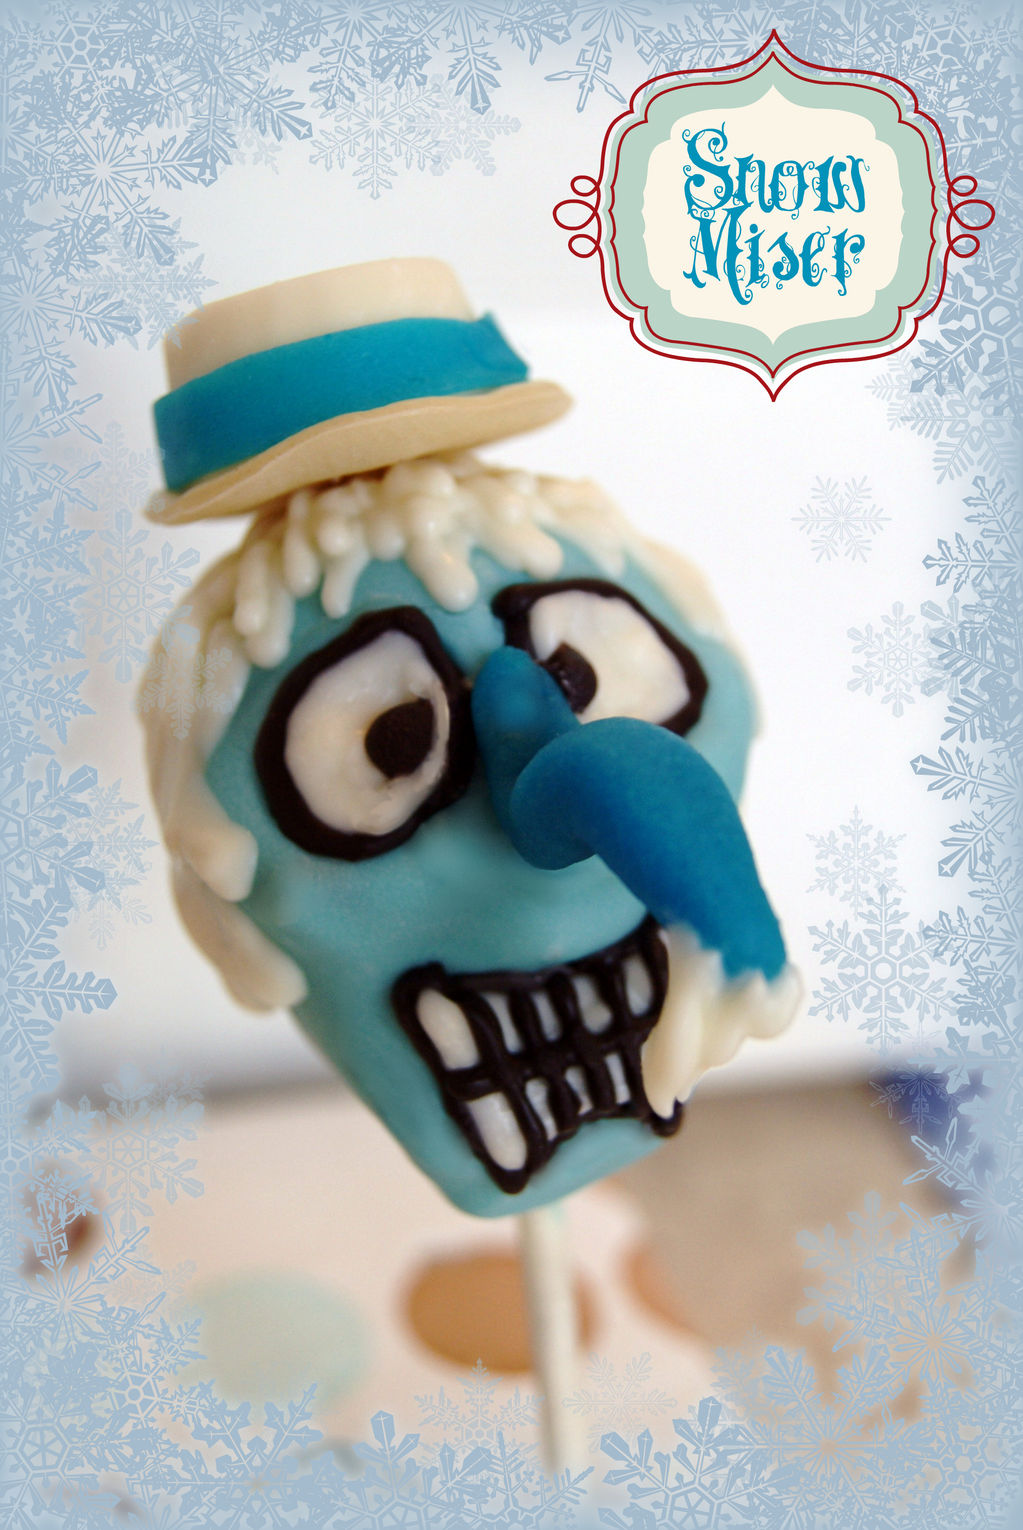 snow miser cake pop